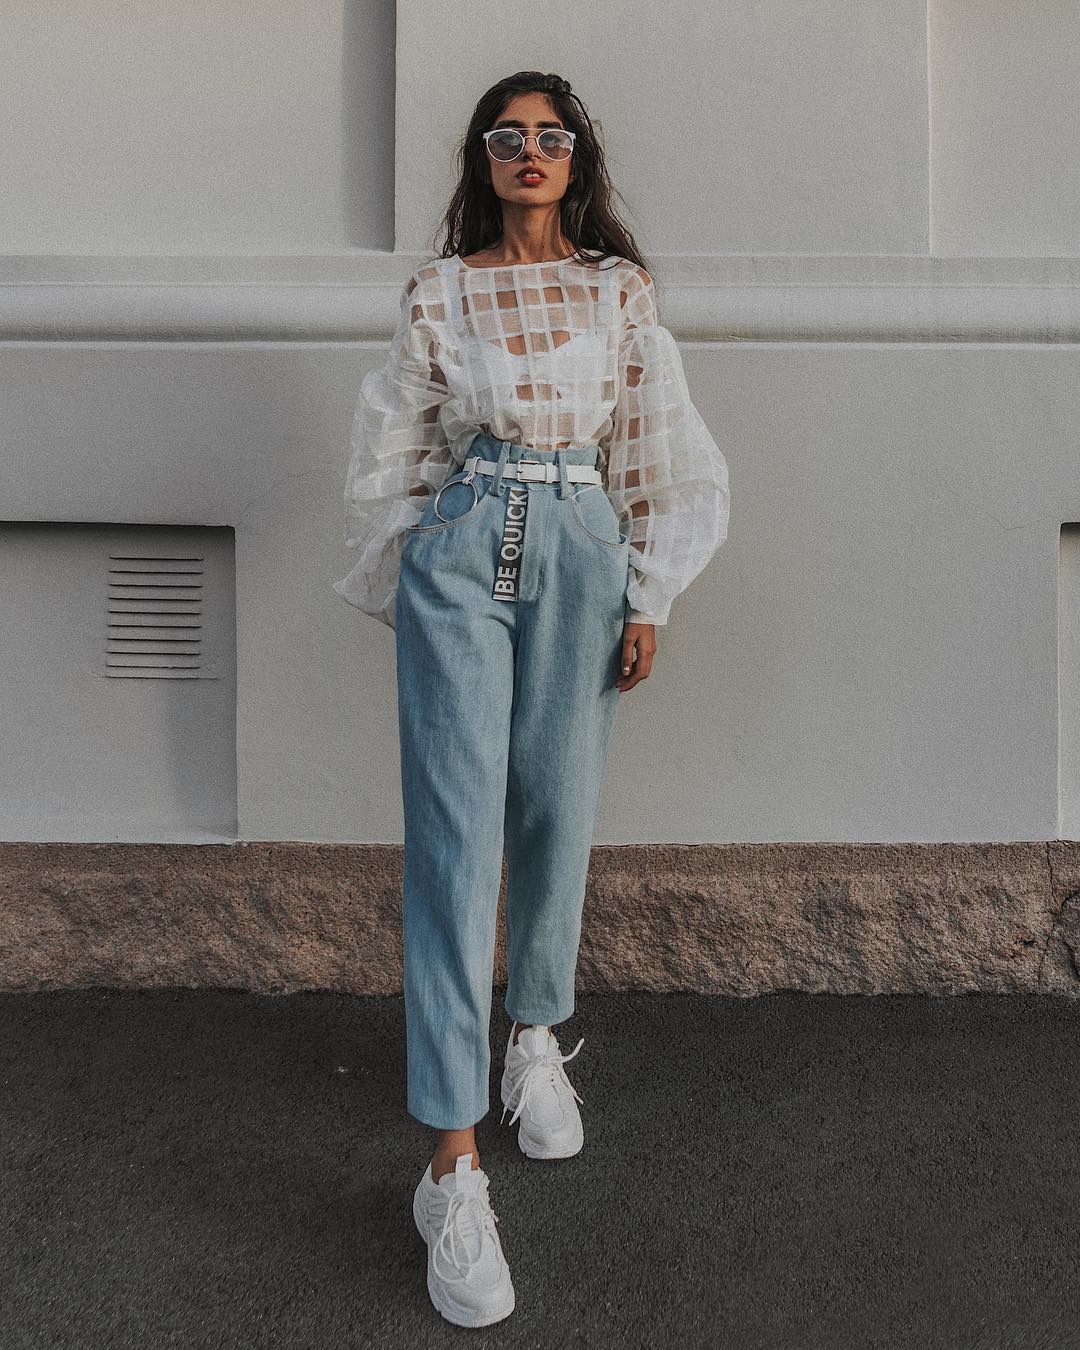 White Sheer Top And High-Rise Light Blue Regular Jeans